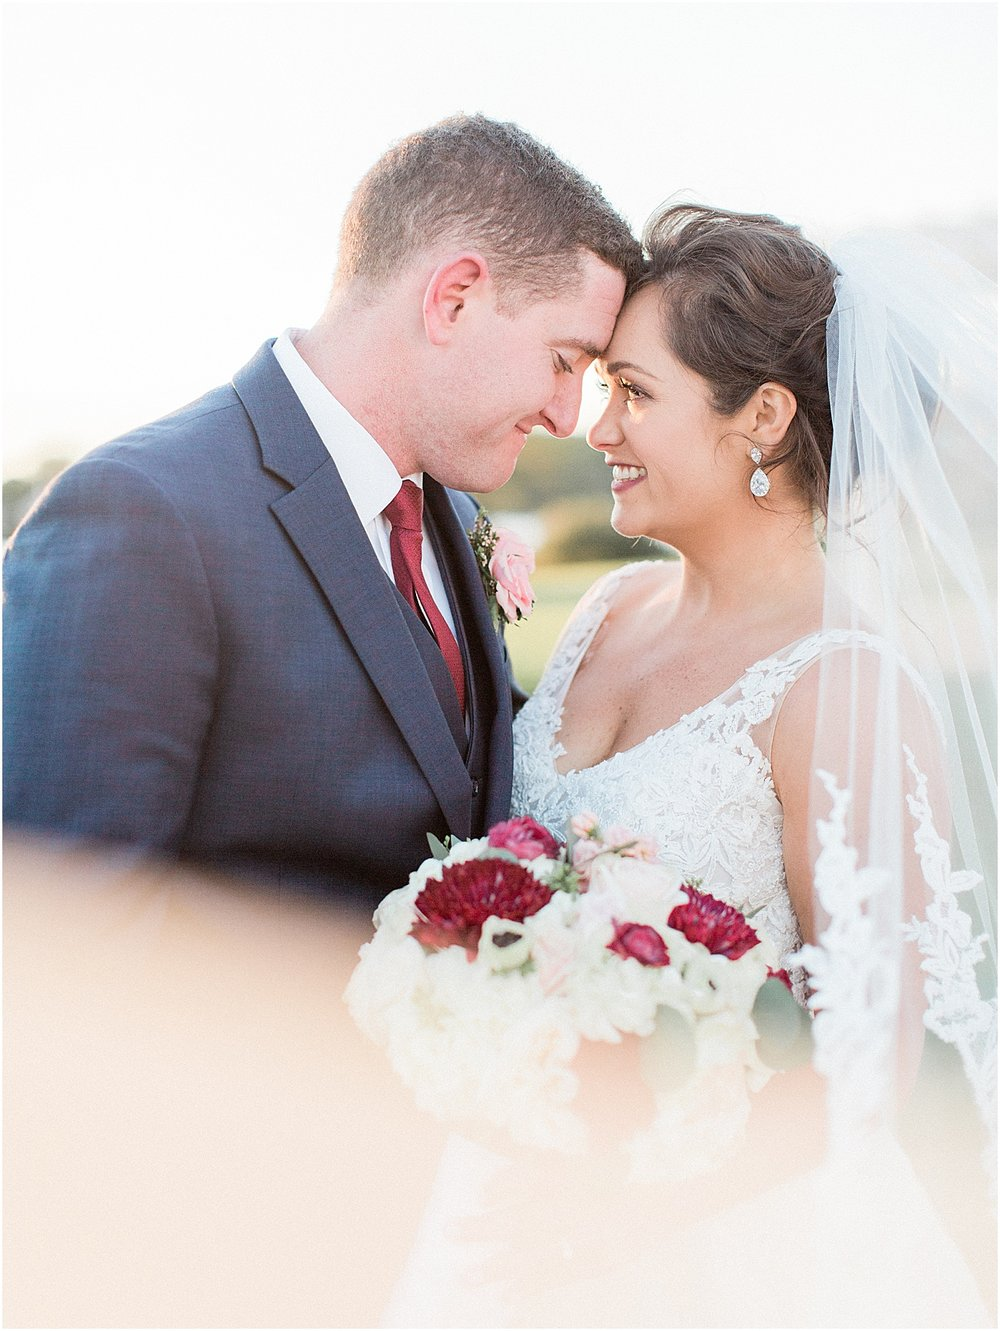 shannon_daniel_dan_atlantic_resort_saint_marys_st_mary_church_fall_newport_catholic_irish_cape_cod_boston_wedding_photographer_meredith_jane_photography_photo_1642.jpg